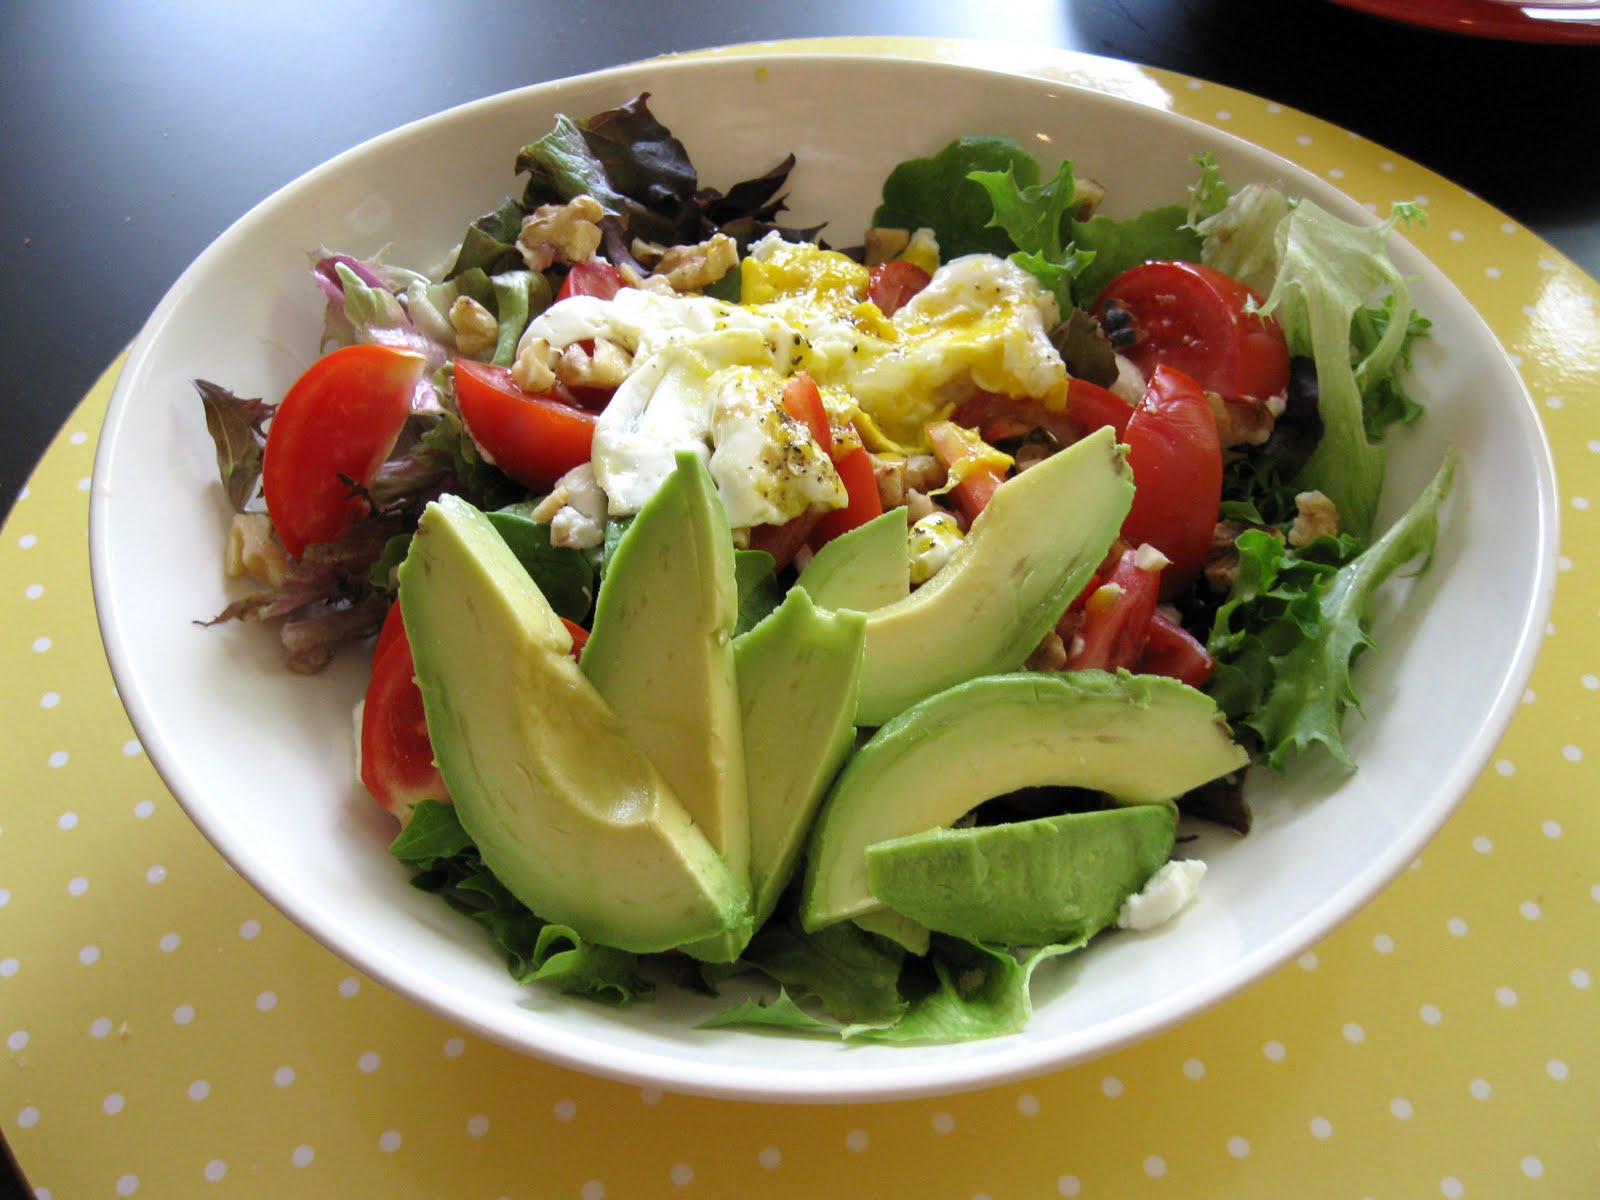 MARI NOT-SO-BLAND: Avocado Goat Cheese Salad with Fried Egg